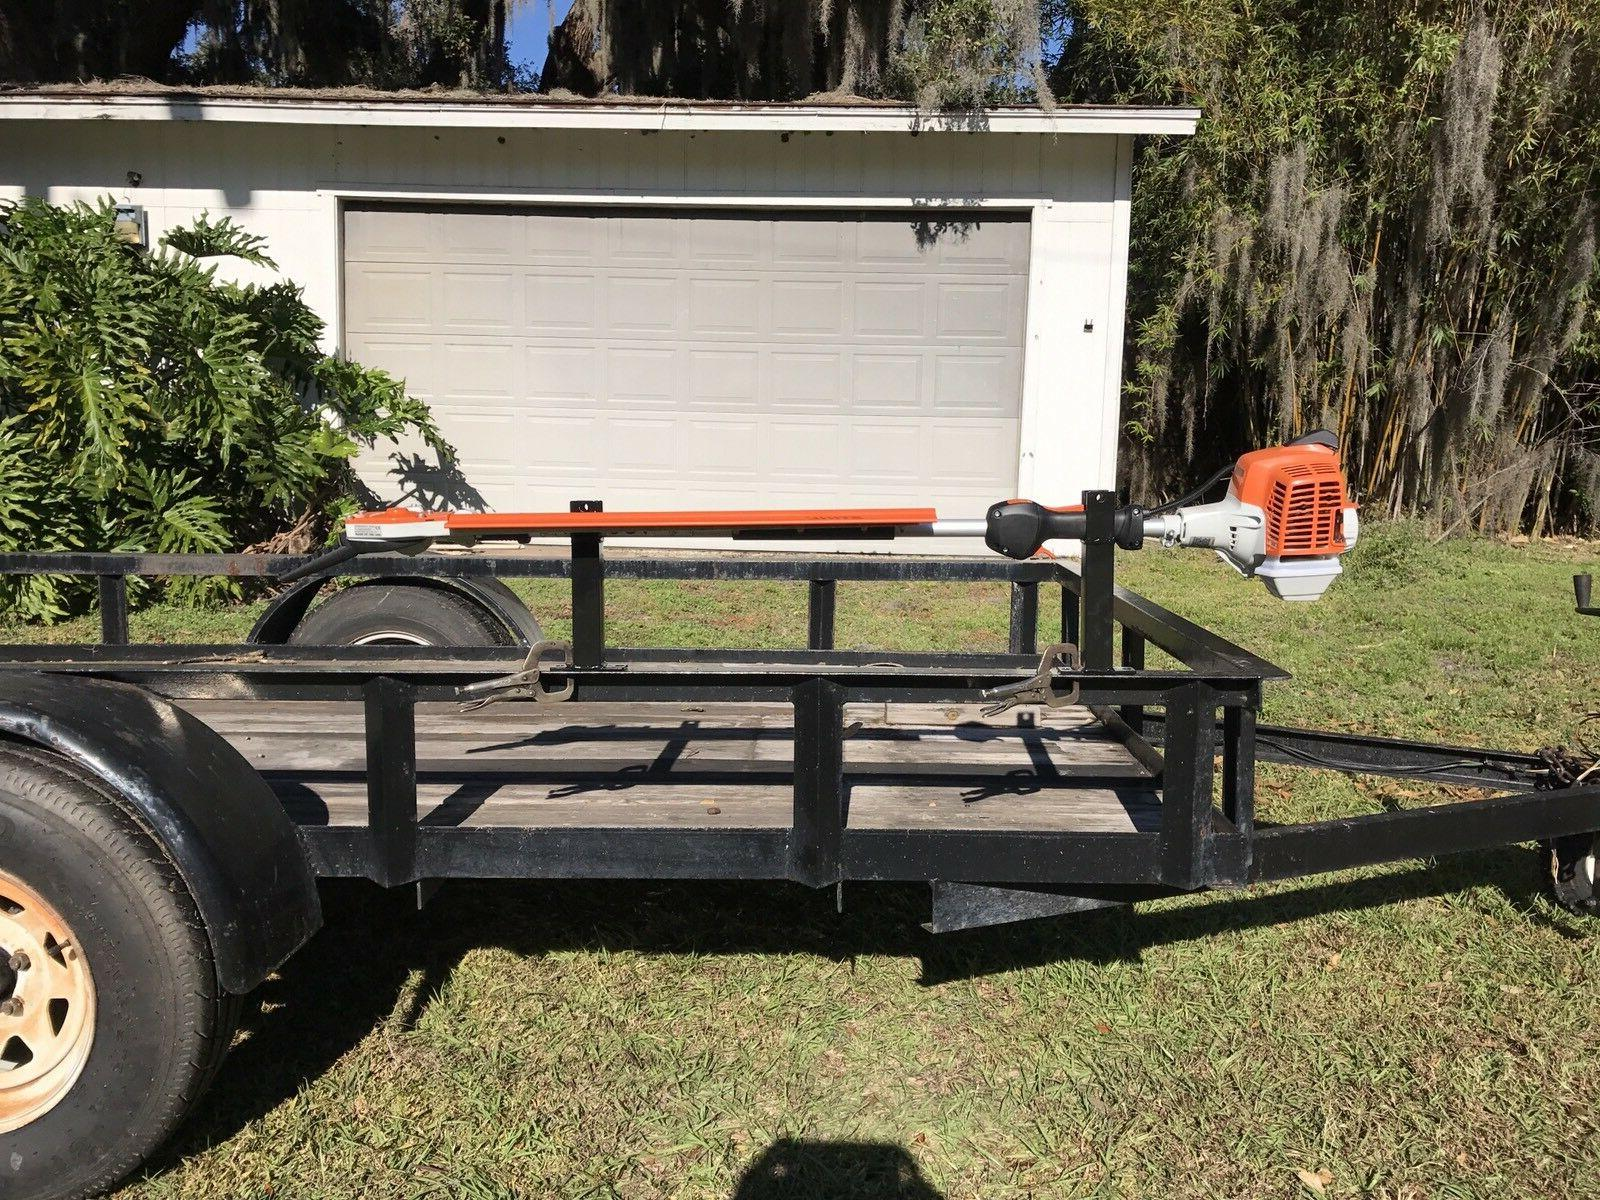 Tall Holder For Weedeater Edger Trimmer Weed Open Trailer &